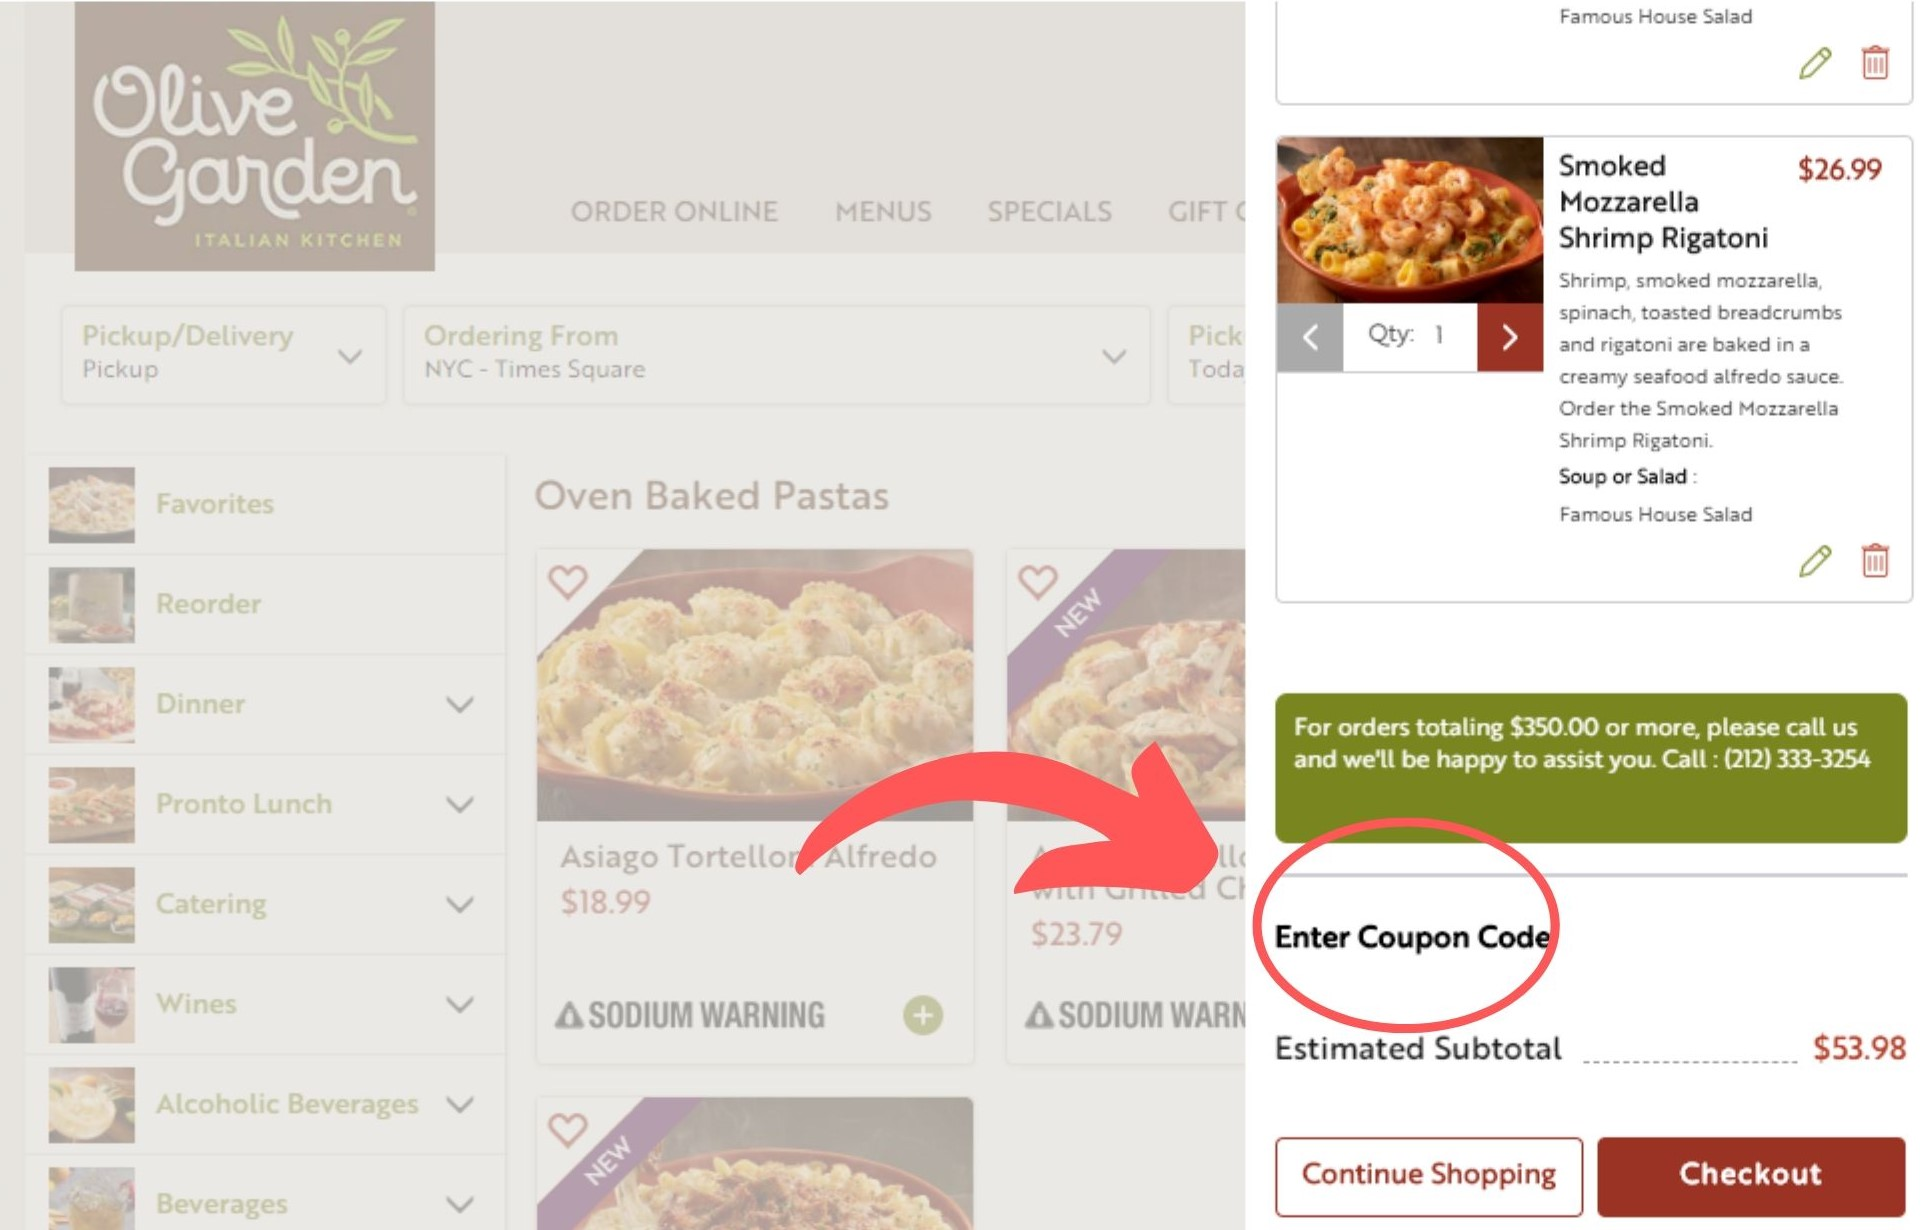 Olive Garden Coupons Coupon Code Promo Codes 20 Off May 2020